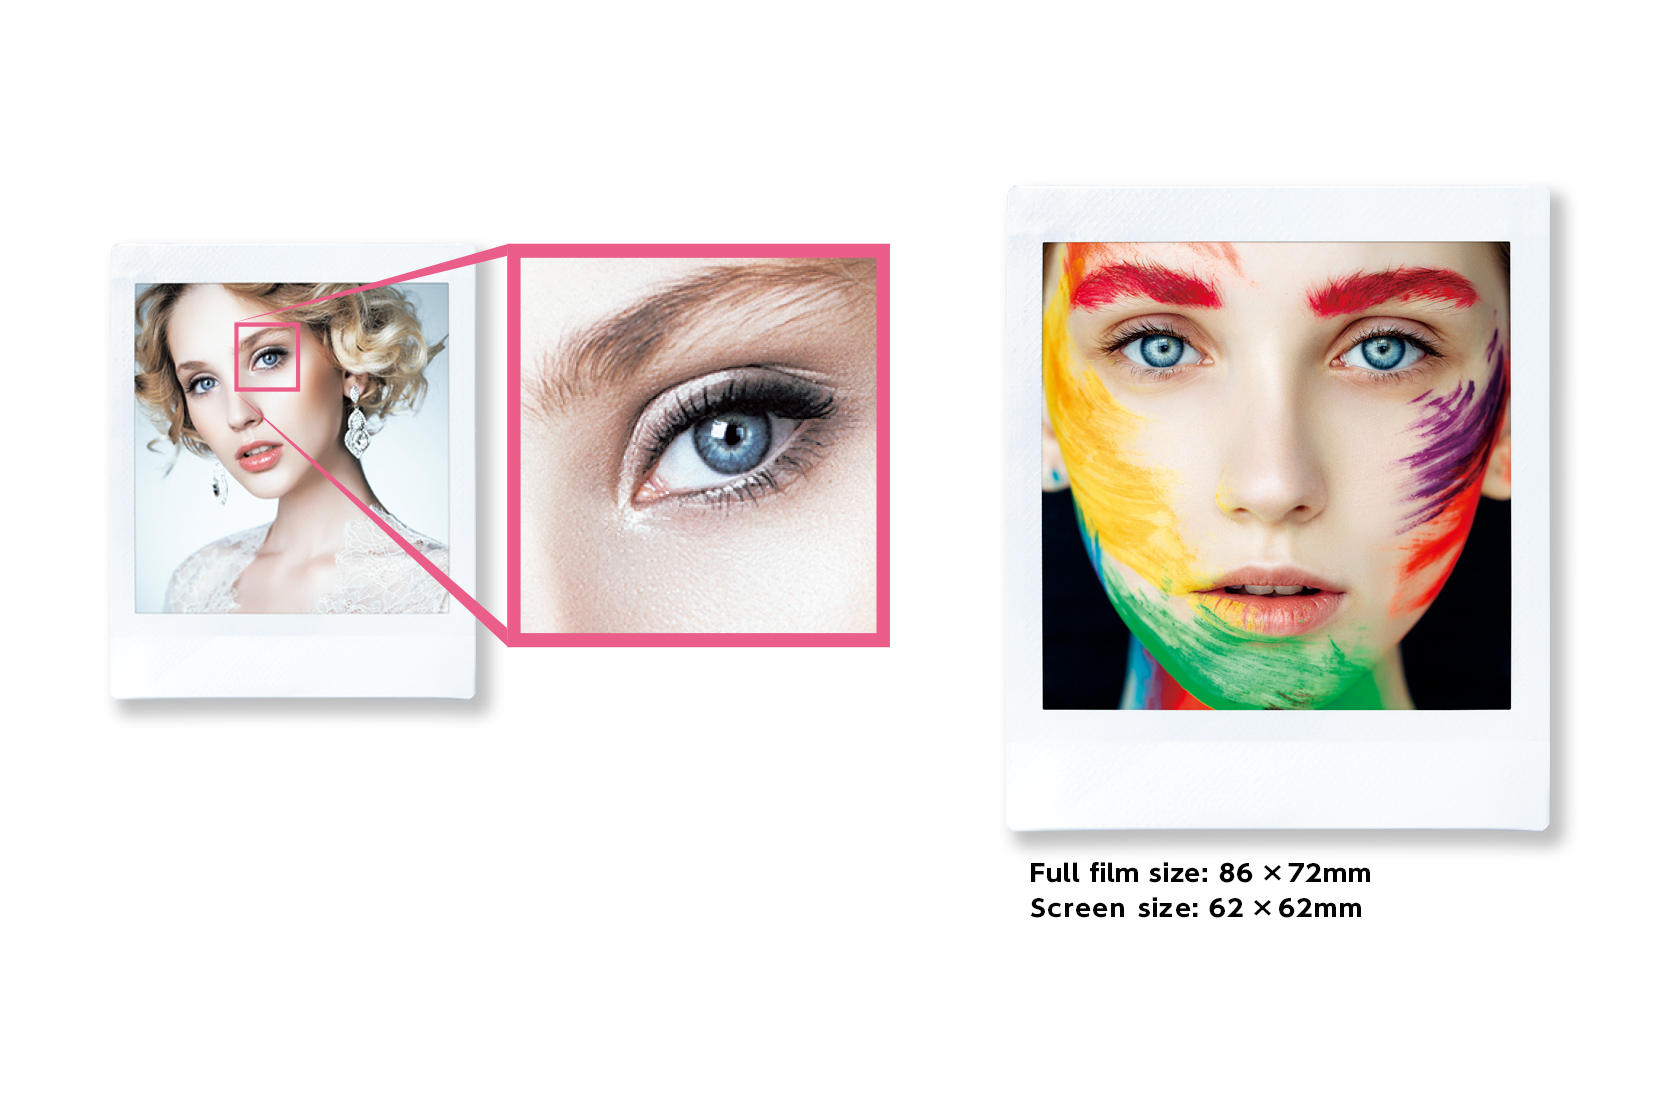 [photo] Sample photos of the superb image quality of the Instax SHARE SP-3 of Portrait of a woman with a pop-up close up of her eye another portrait of girl face painted in multiple colors.